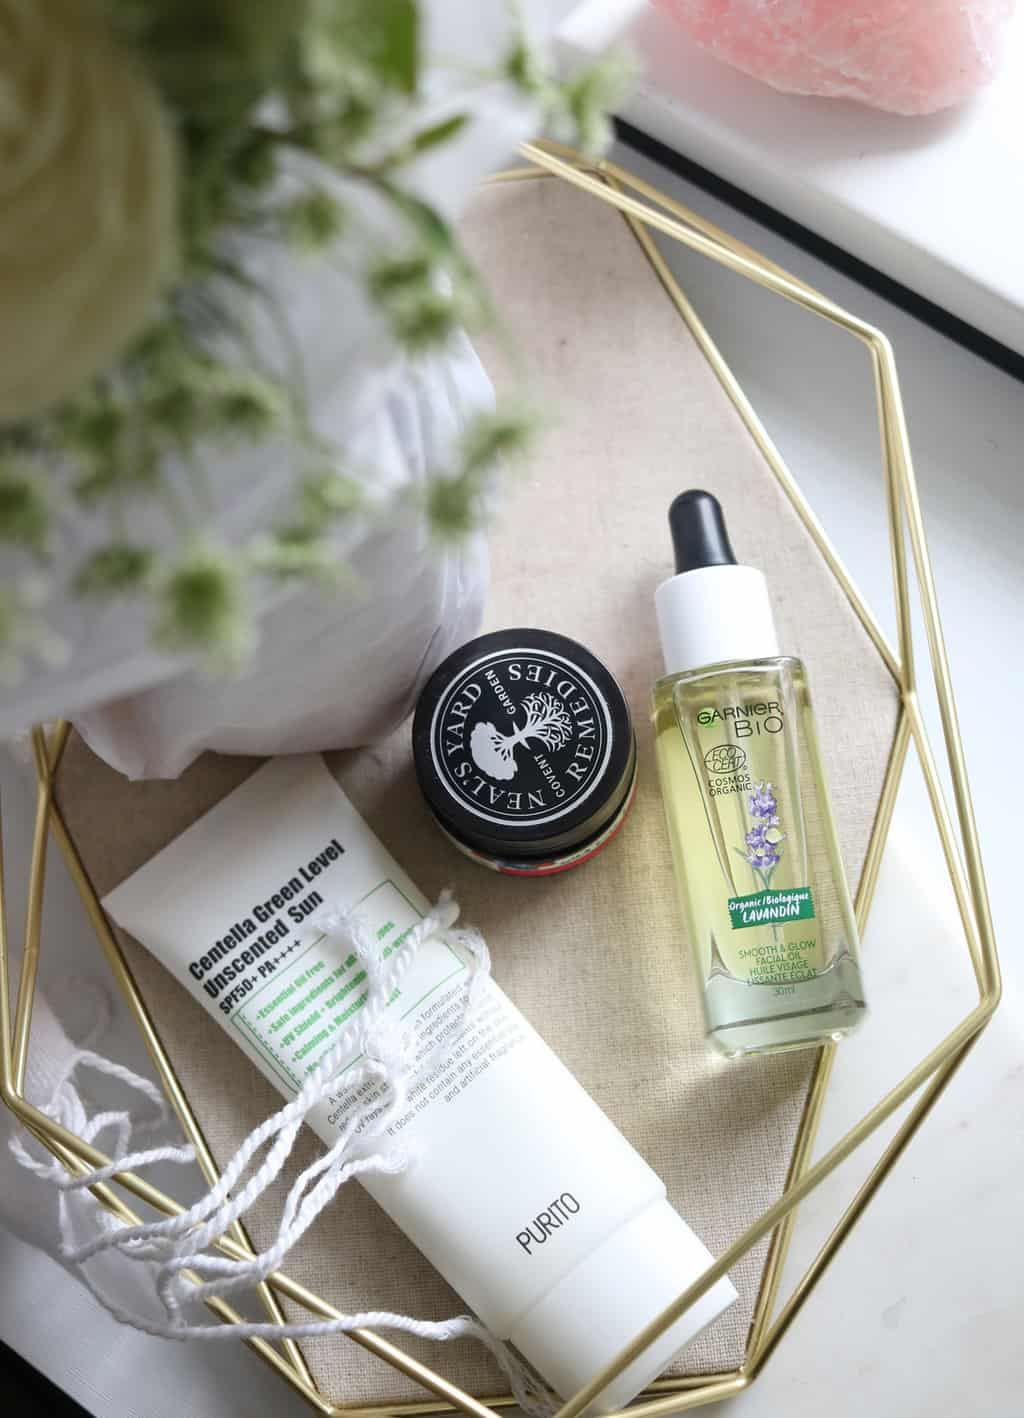 5 Changes You Might Want to Make to Your Skincare Routine